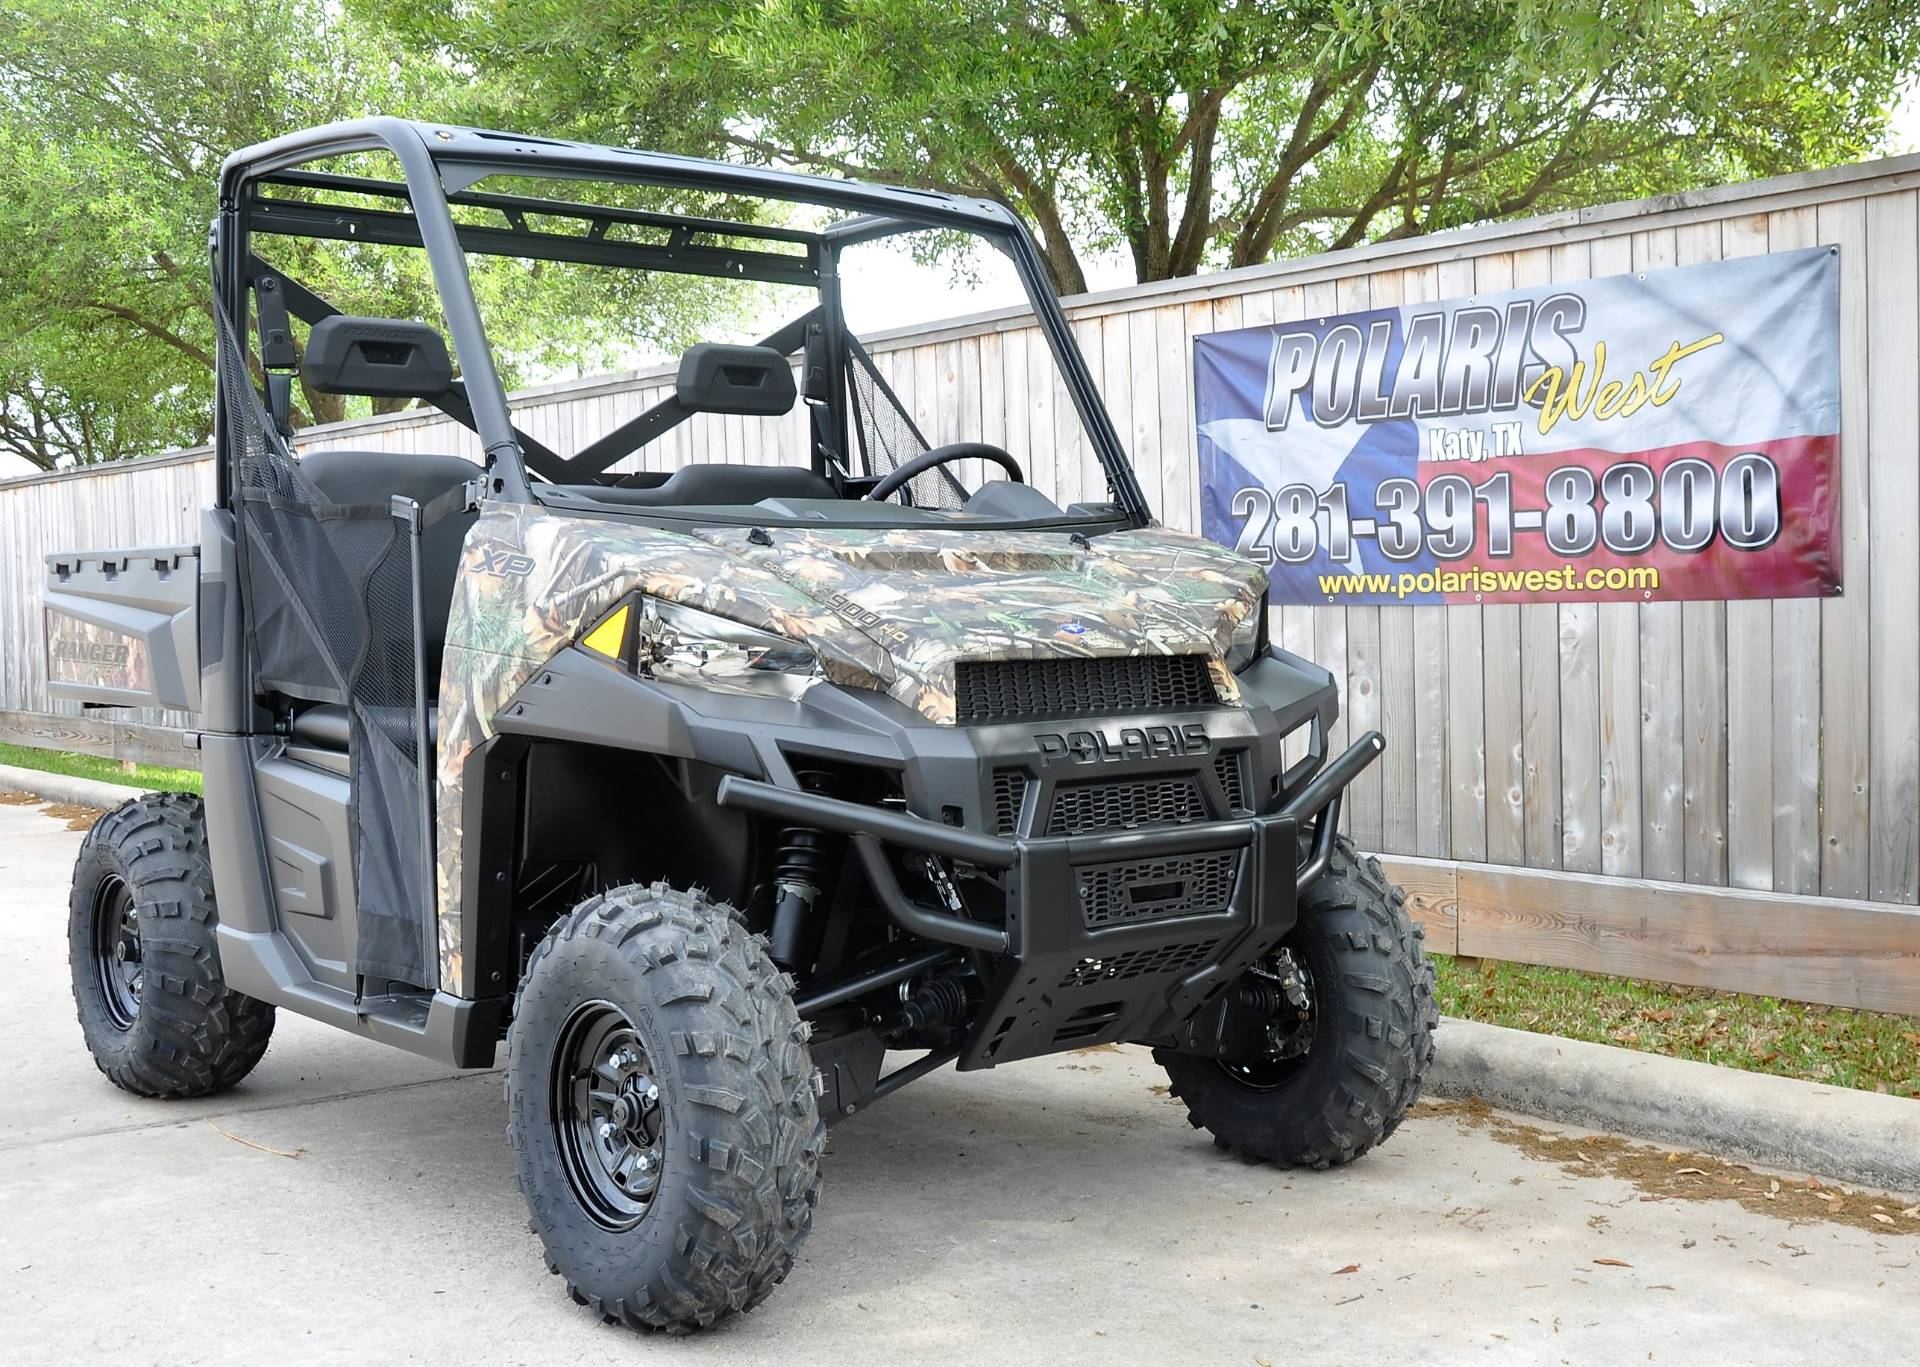 2019 Polaris Ranger XP 900 4